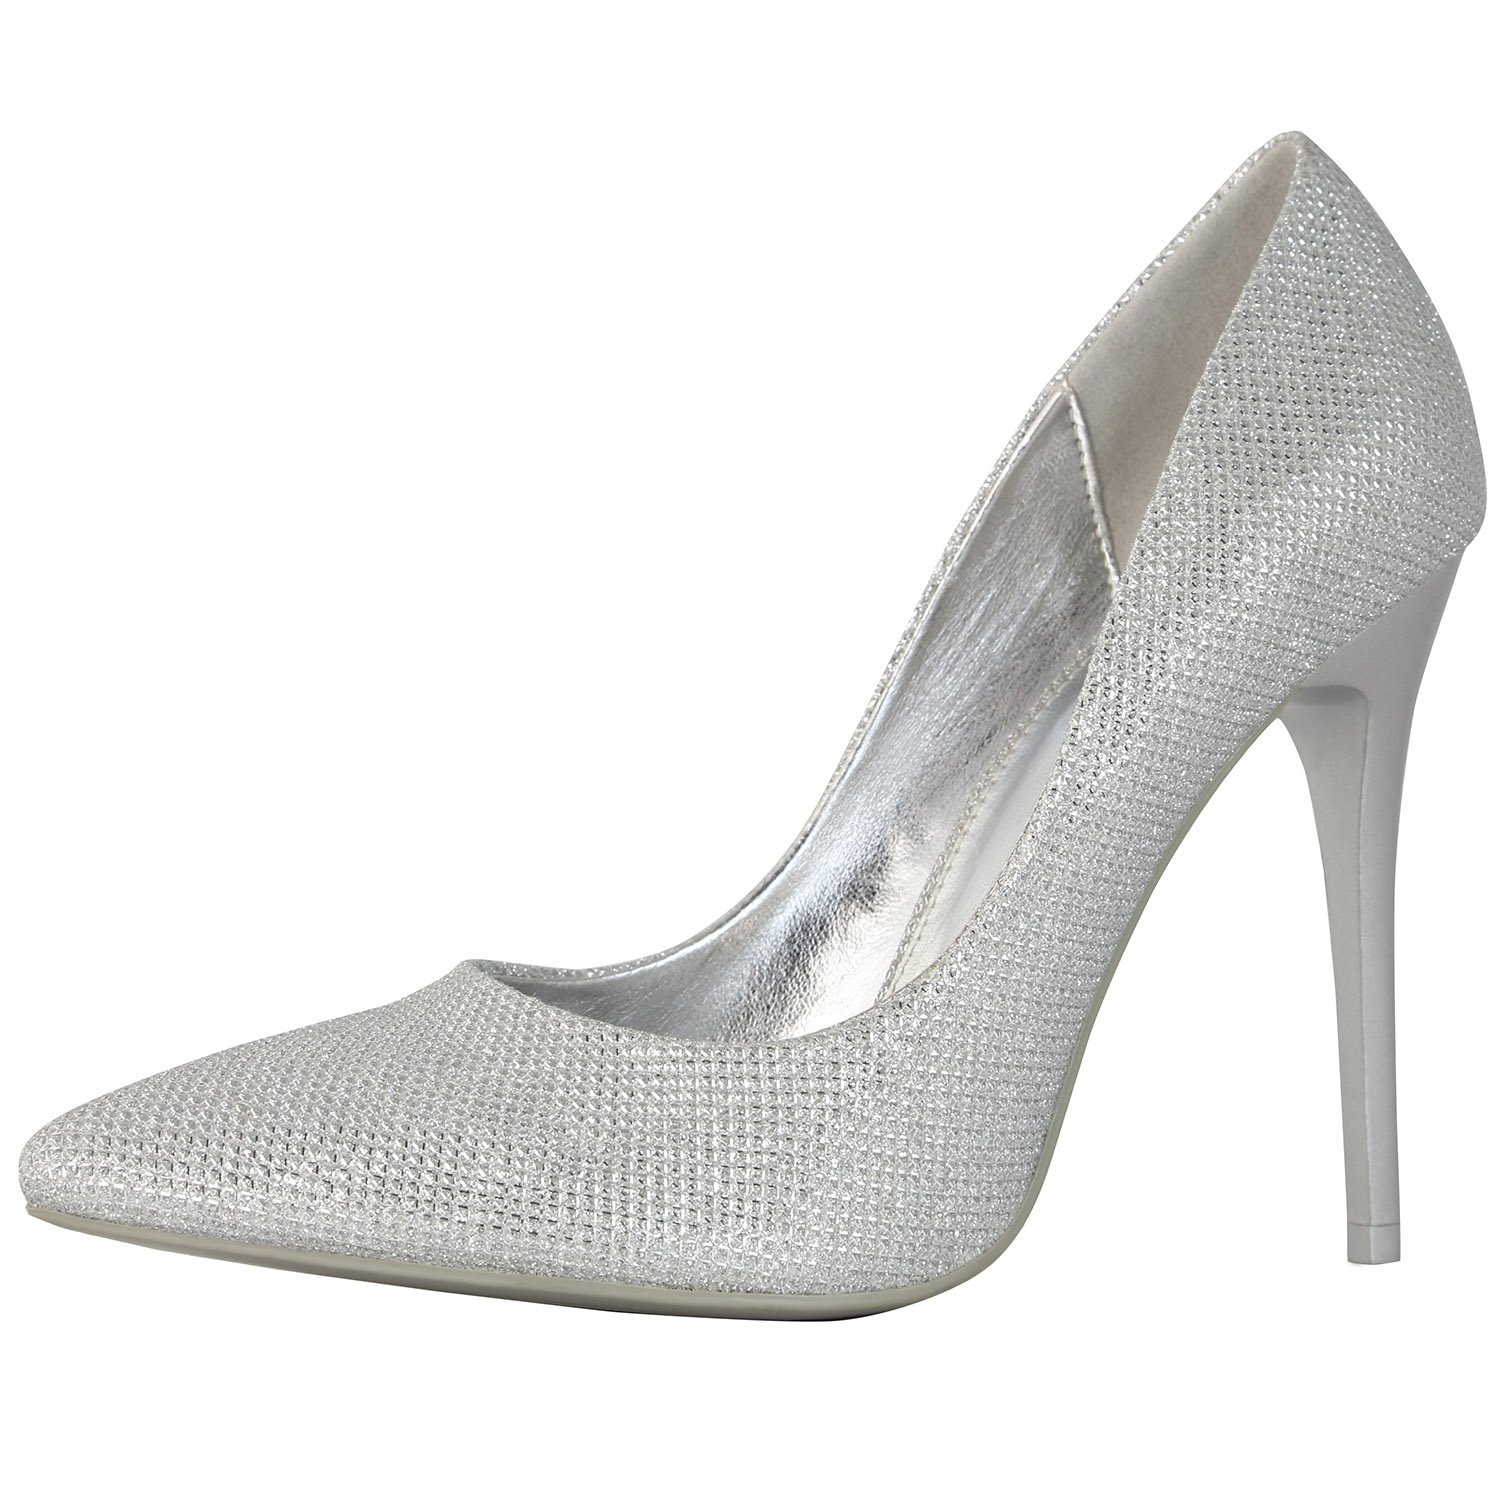 DailyShoes Women's Classic Fashion Stiletto Pointed Toe Pairs-01 High Heel Dress Pump Shoes -Perfect for Formal and Dinner Wear, Silver Glitter, 5.5 B(M) US